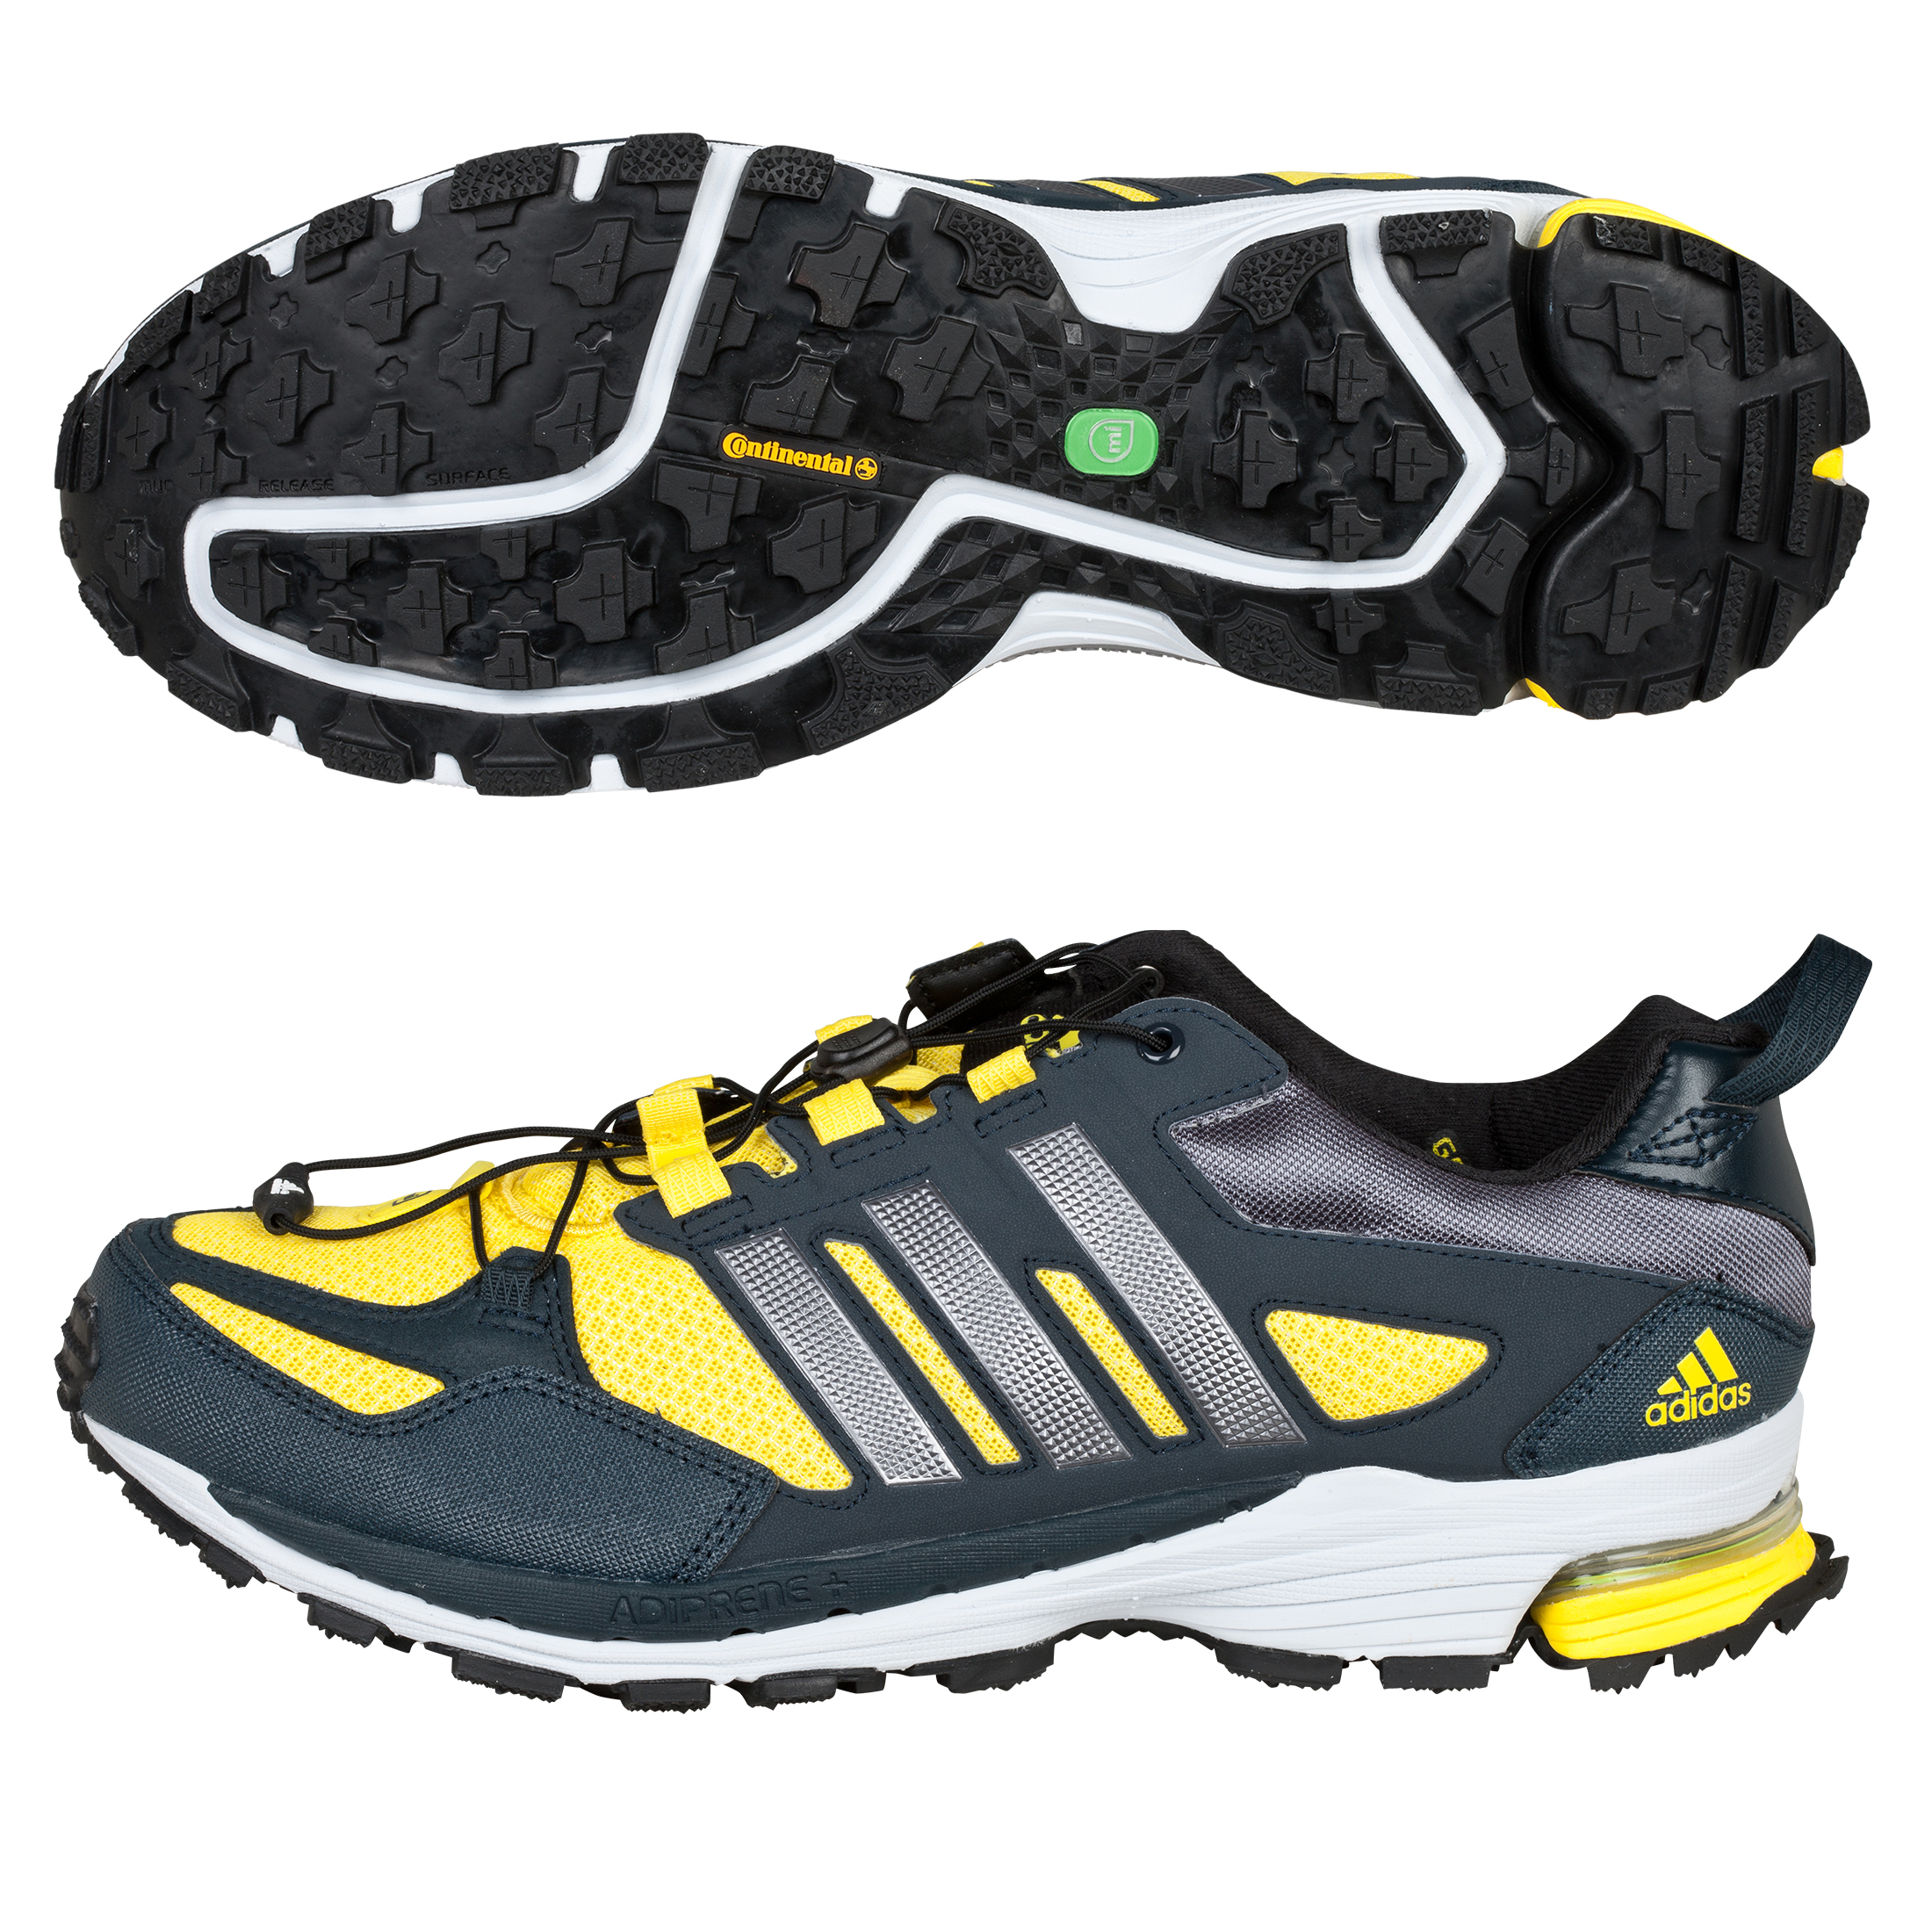 Adidas Supernova Riot 5 Trainers - Vivid Yellow/Neo Iron/Tech Onix